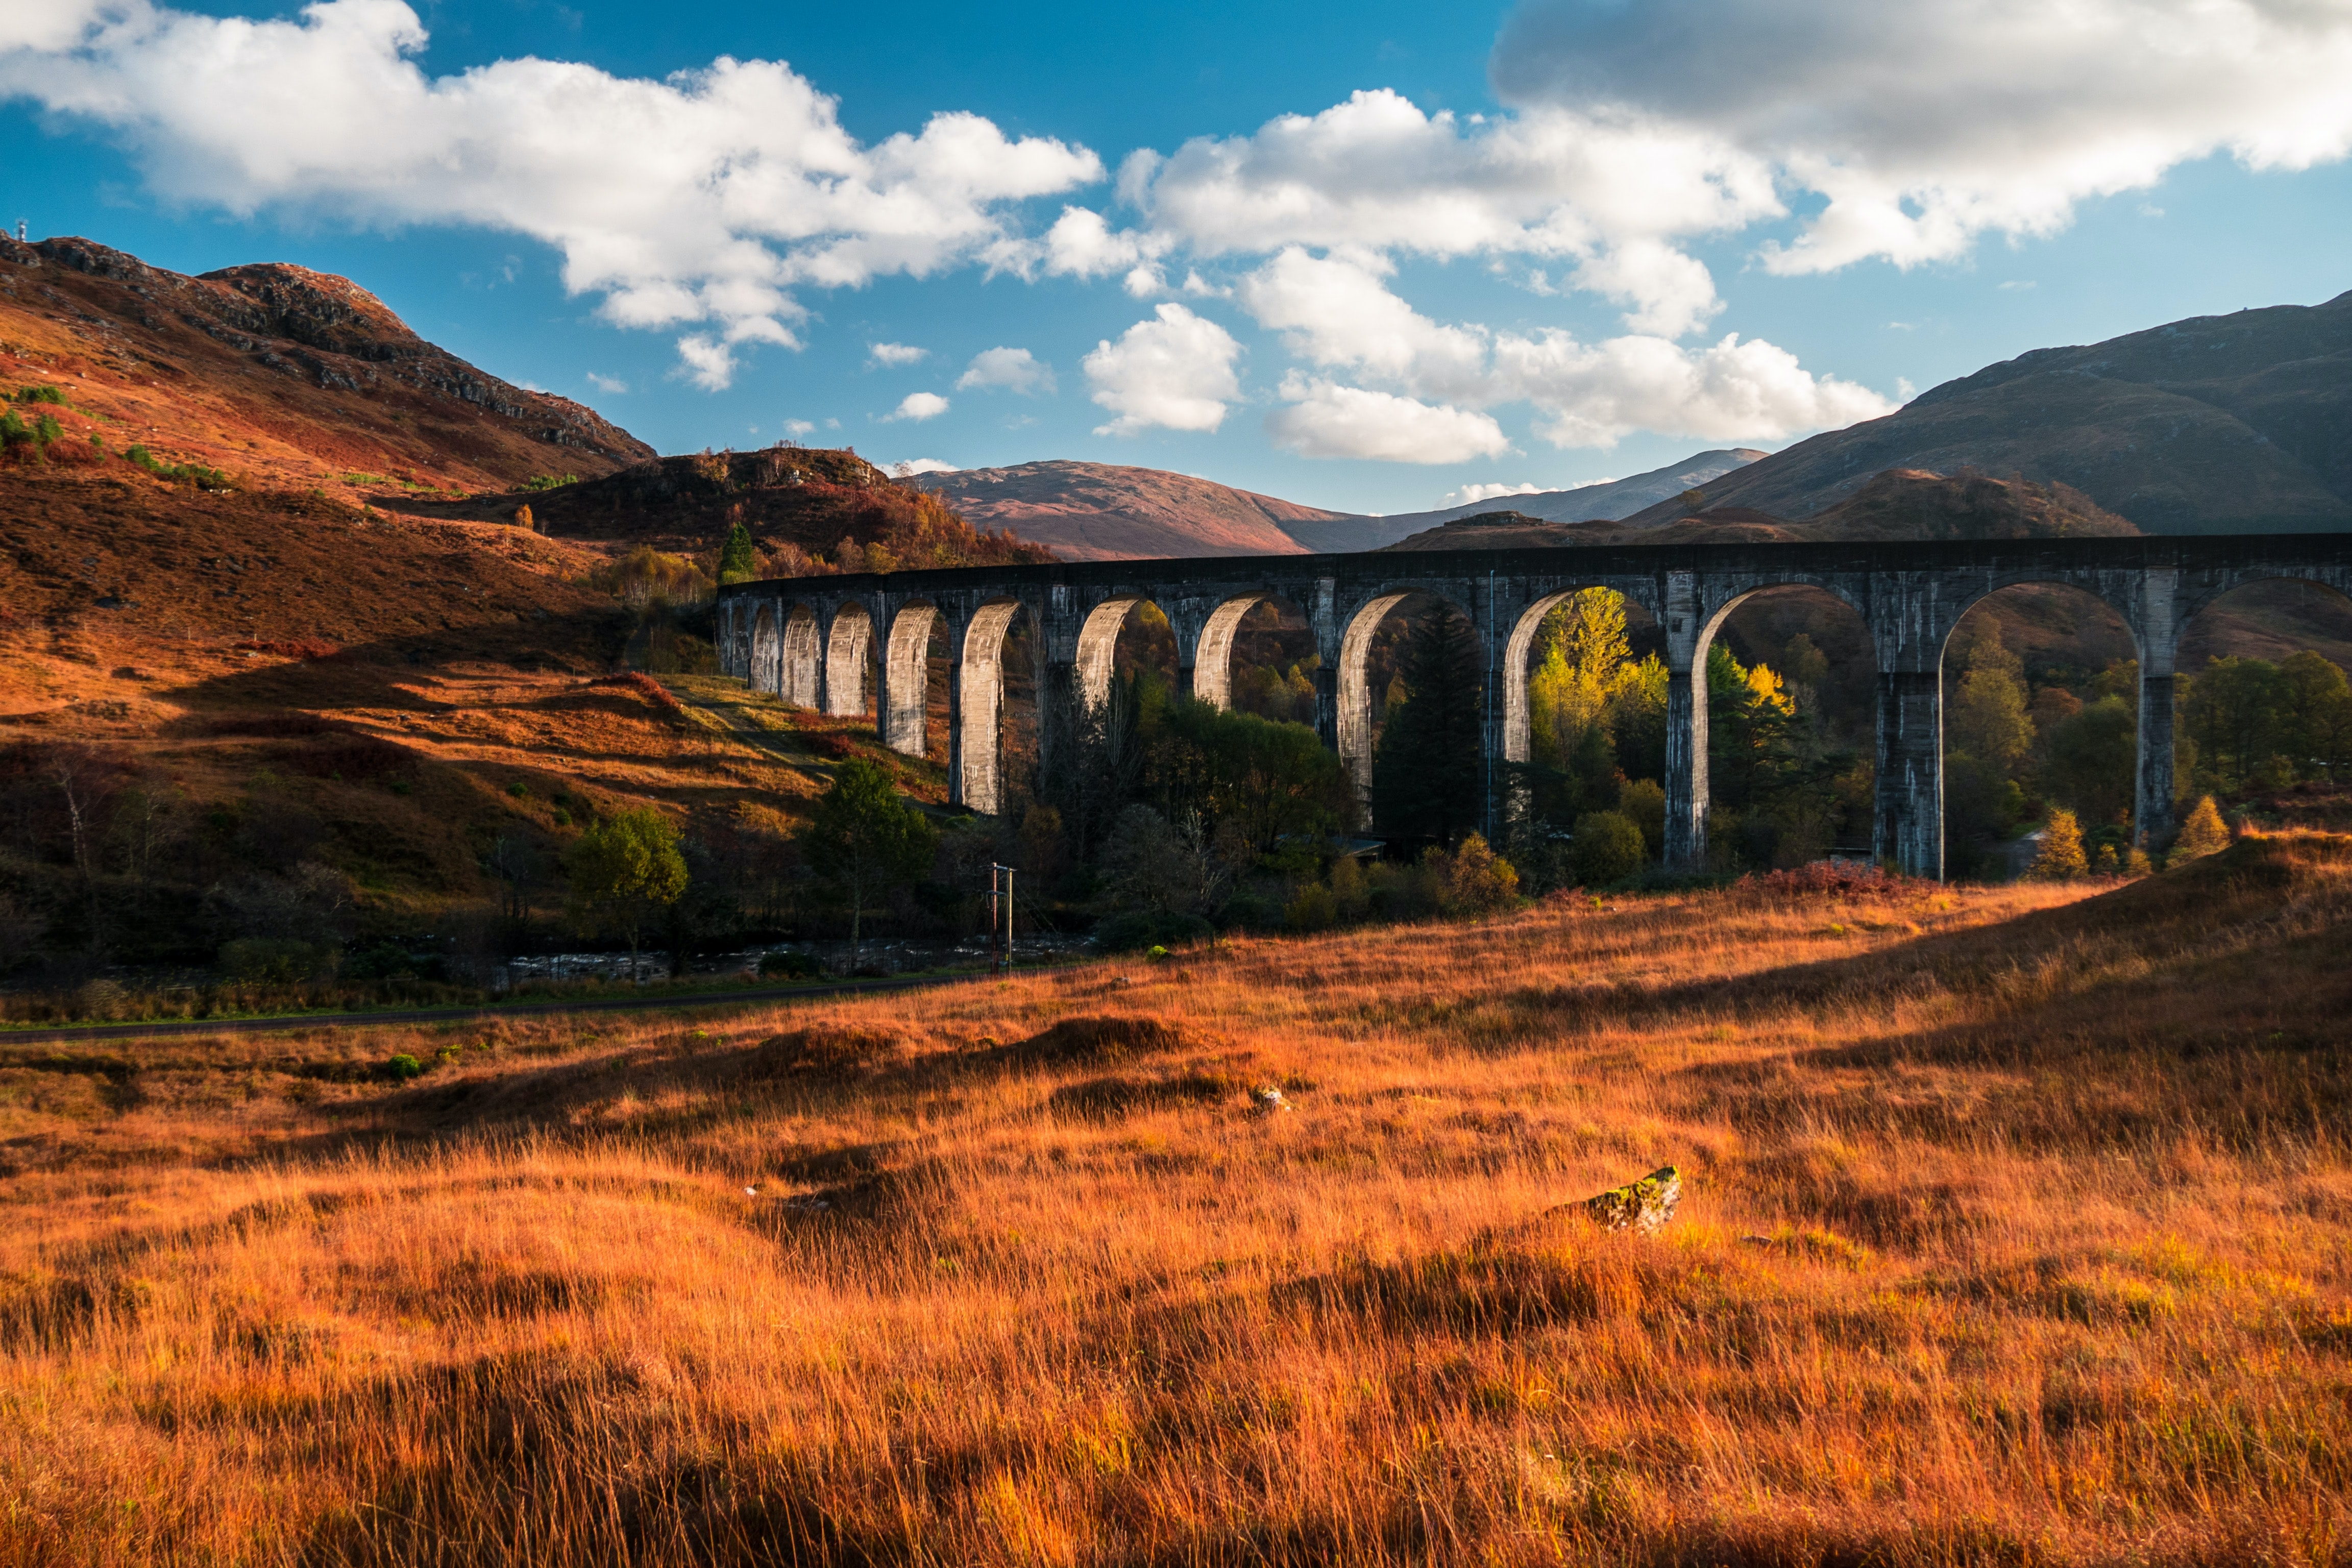 A concrete viaduct running through orange hilly grasslands on a sunny afternoon